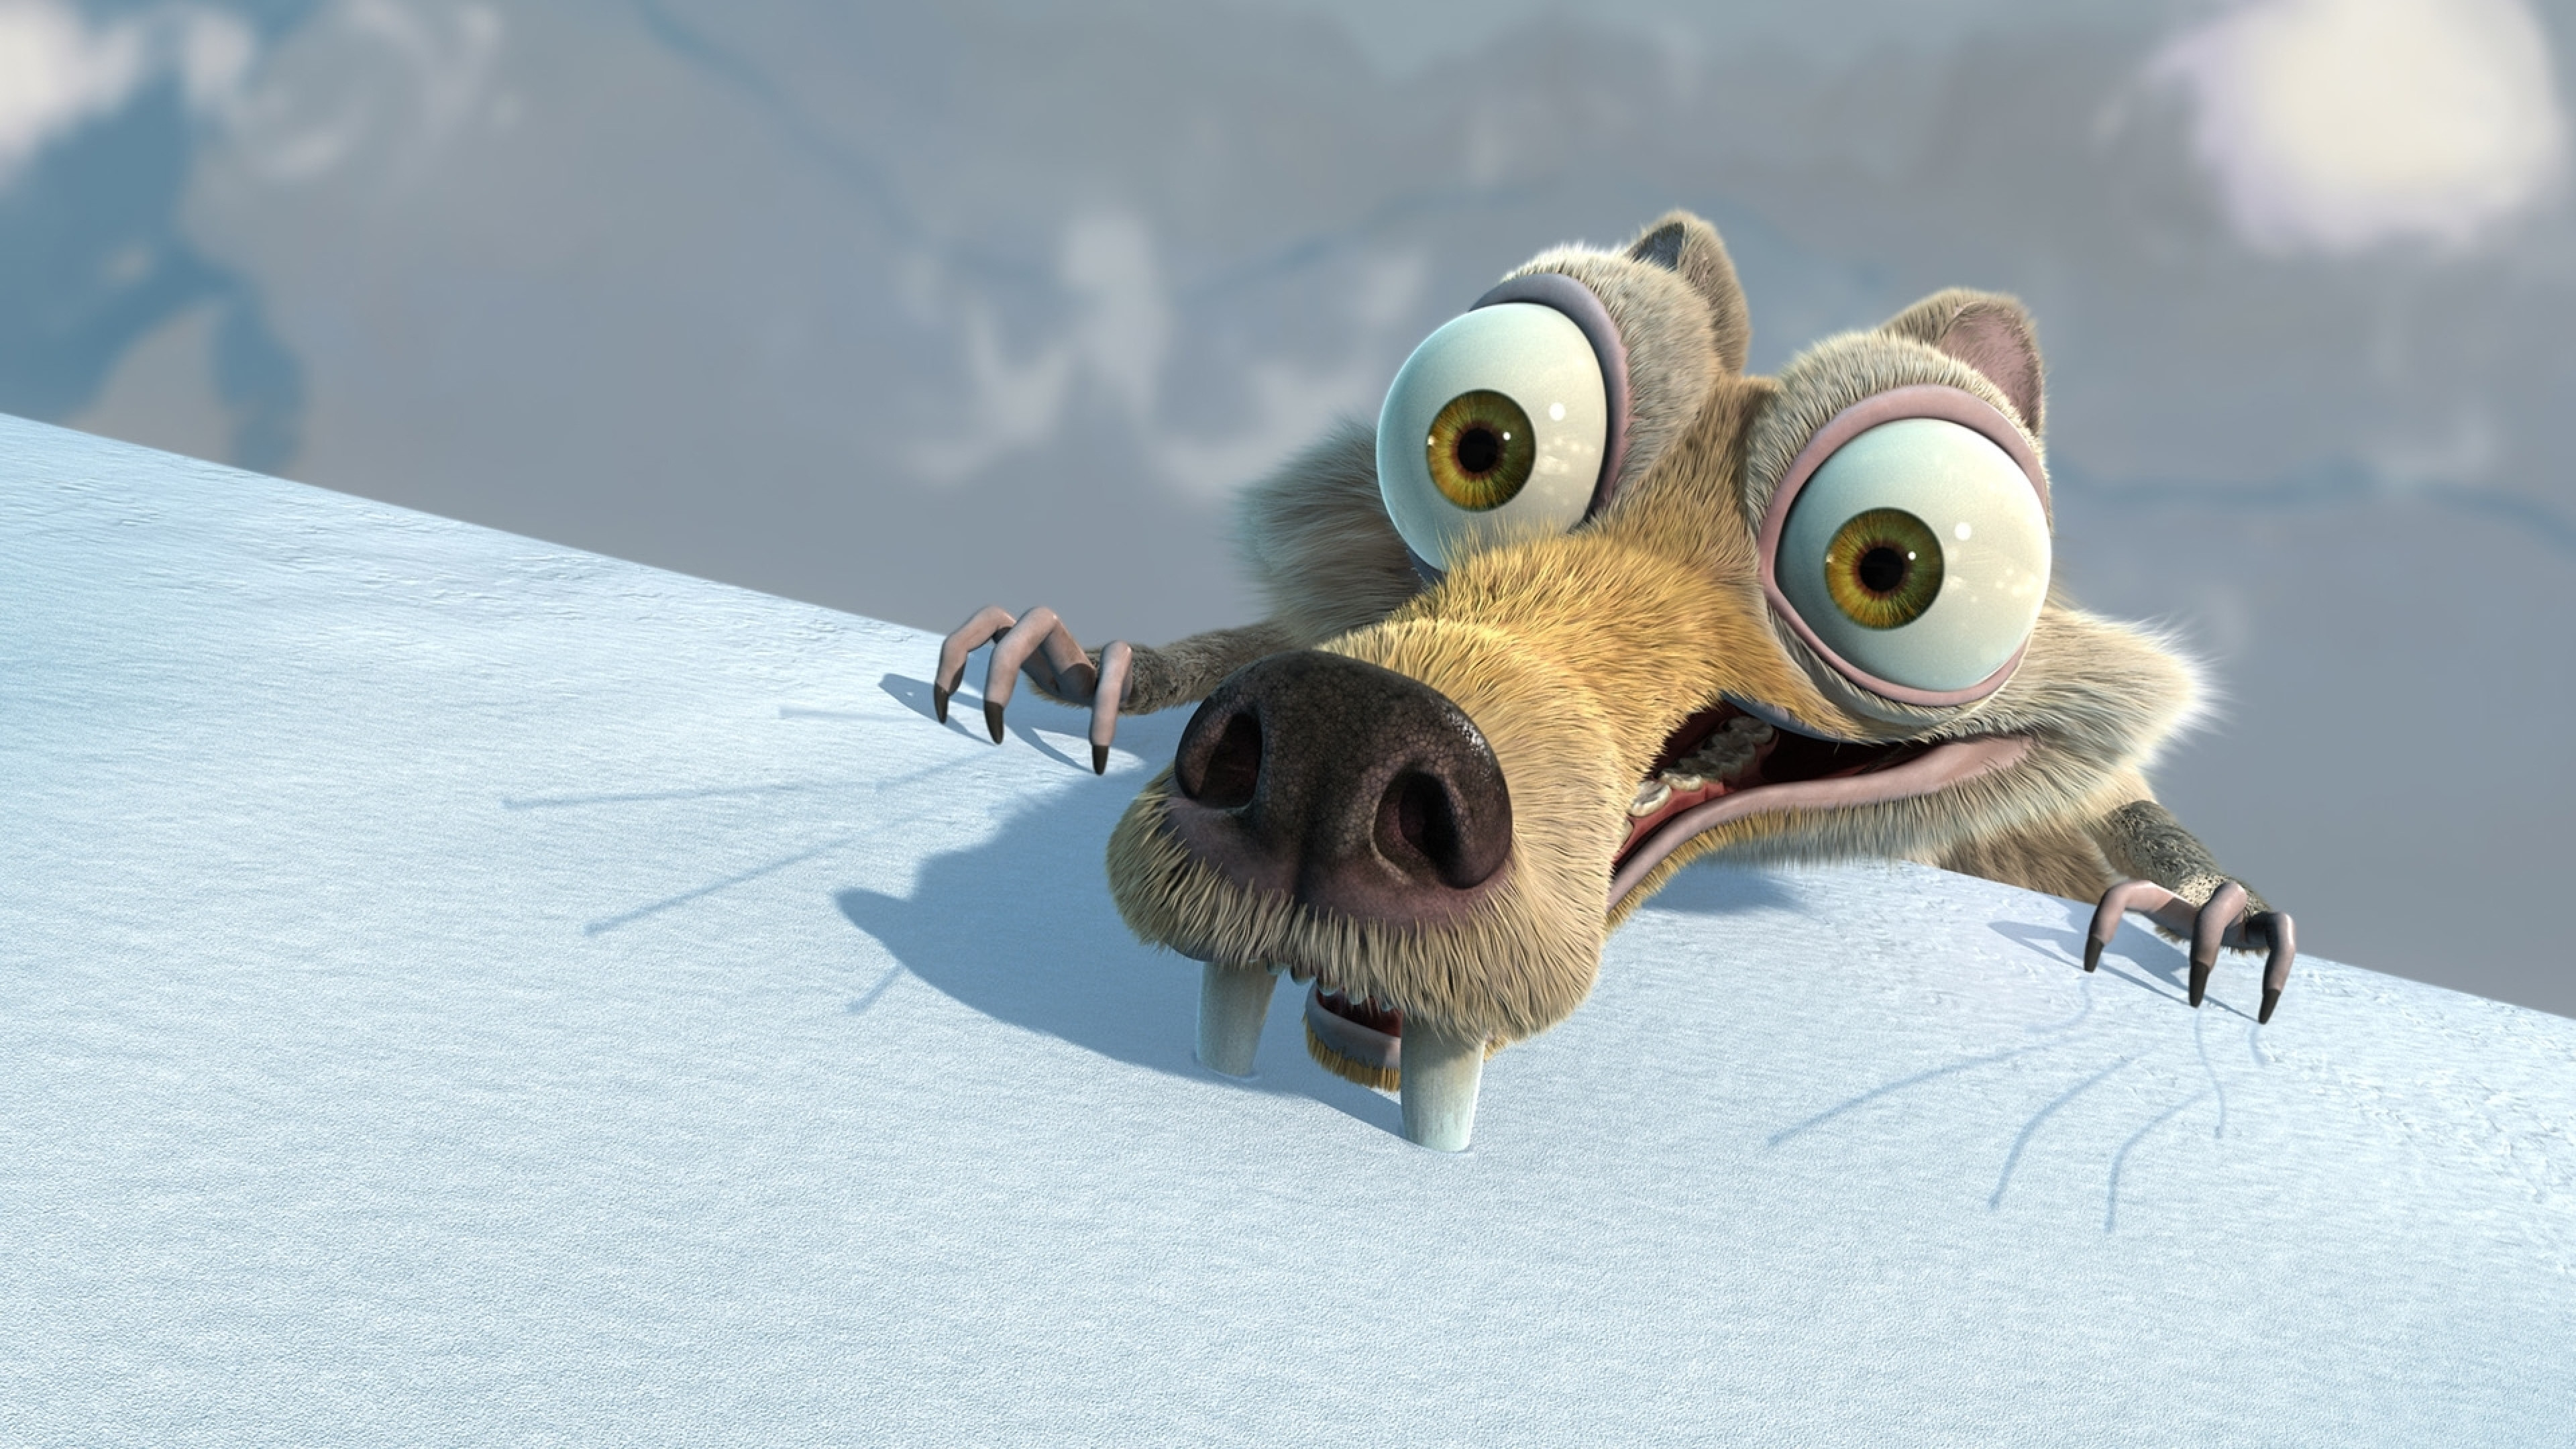 3840x2160 Preview wallpaper skrat, squirrel, ice age, ice, falling